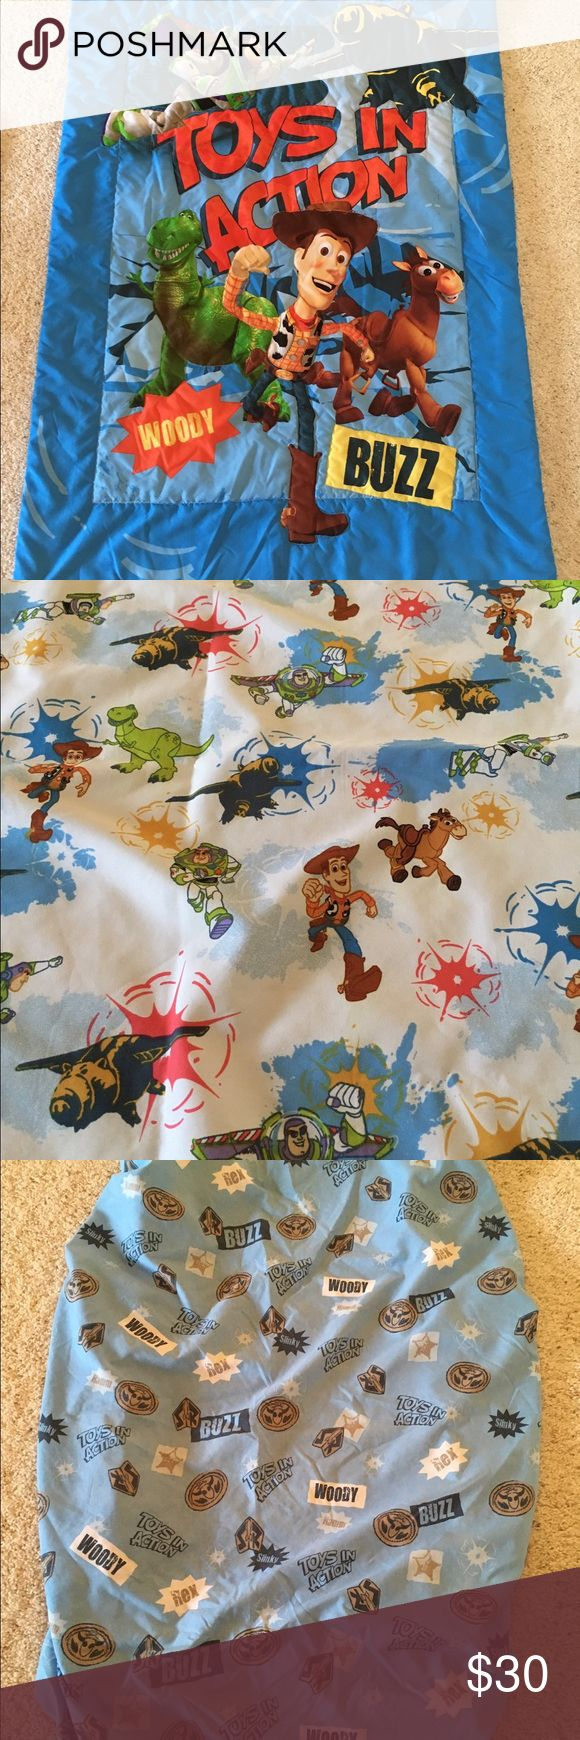 Toddler Bedding Disney Toy Story 3 Piece Set Toddler Bedding Disney's Toy Story 3 Piece Set. In excellent light used condition. Disney Other